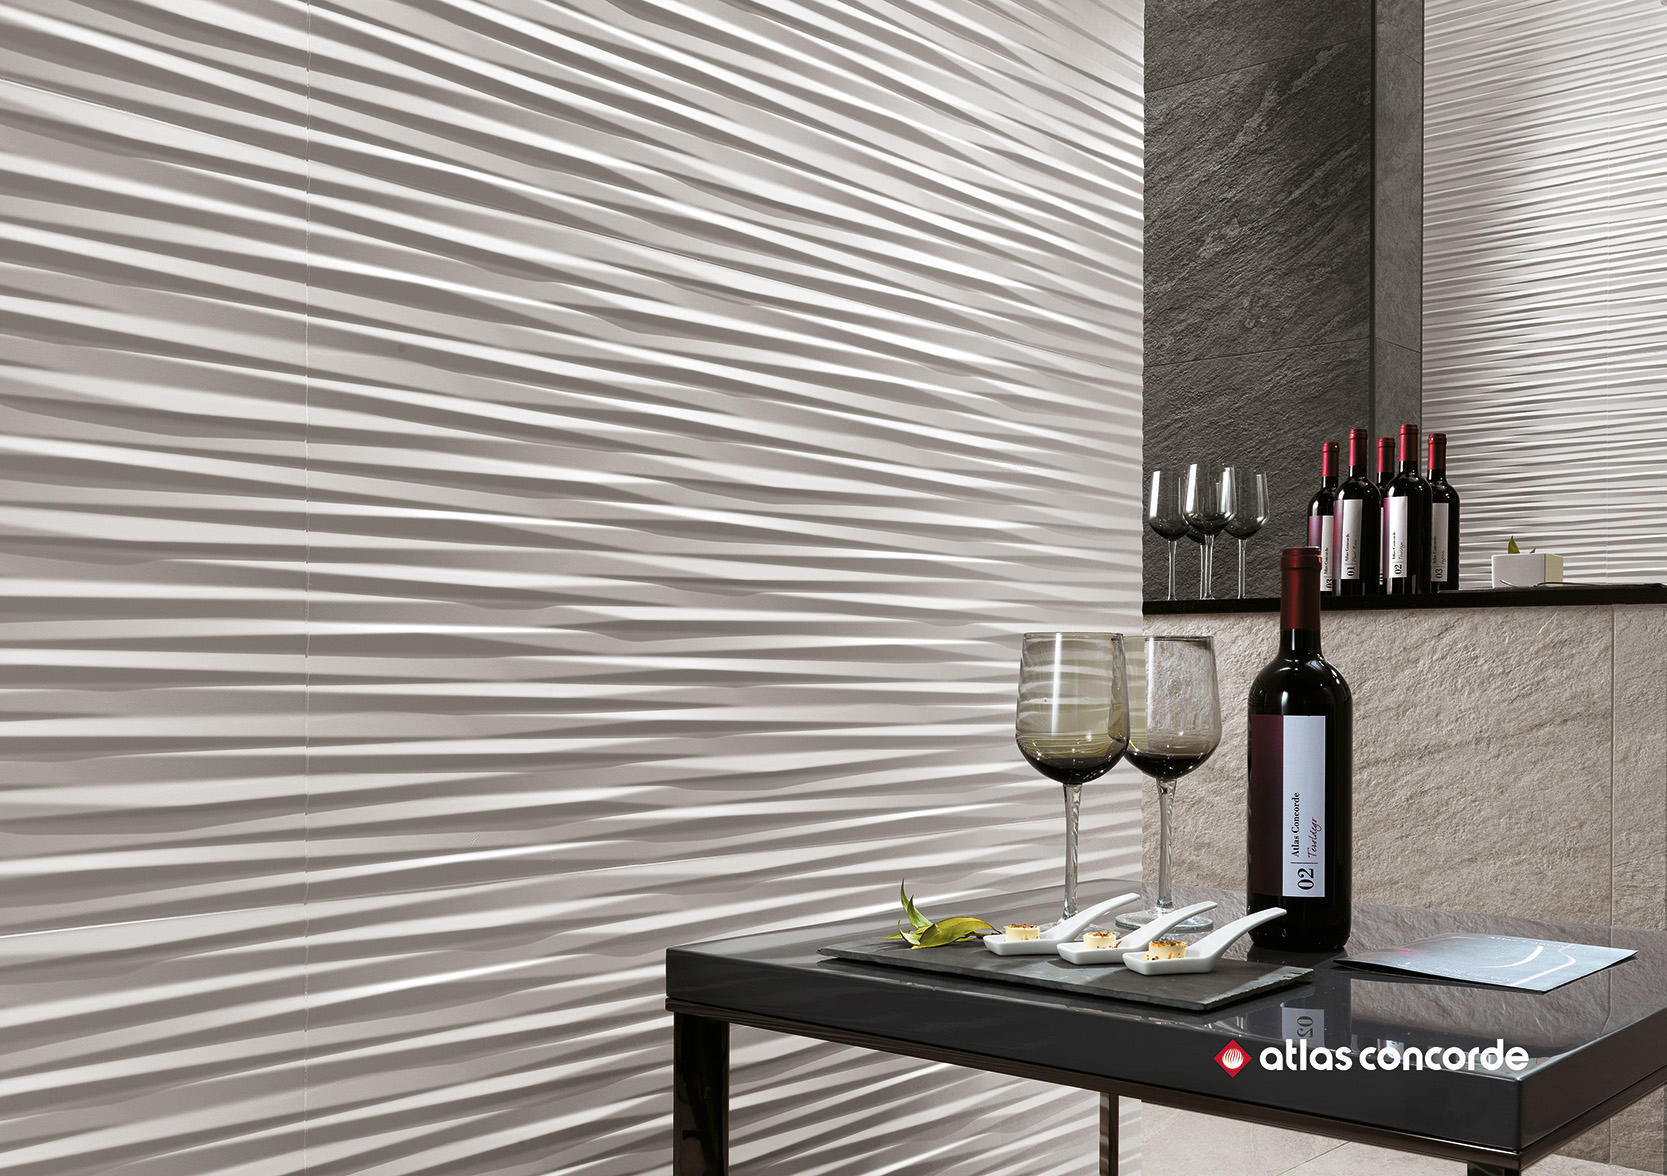 3D WALL ANGLE Ceramic tiles from Atlas Concorde